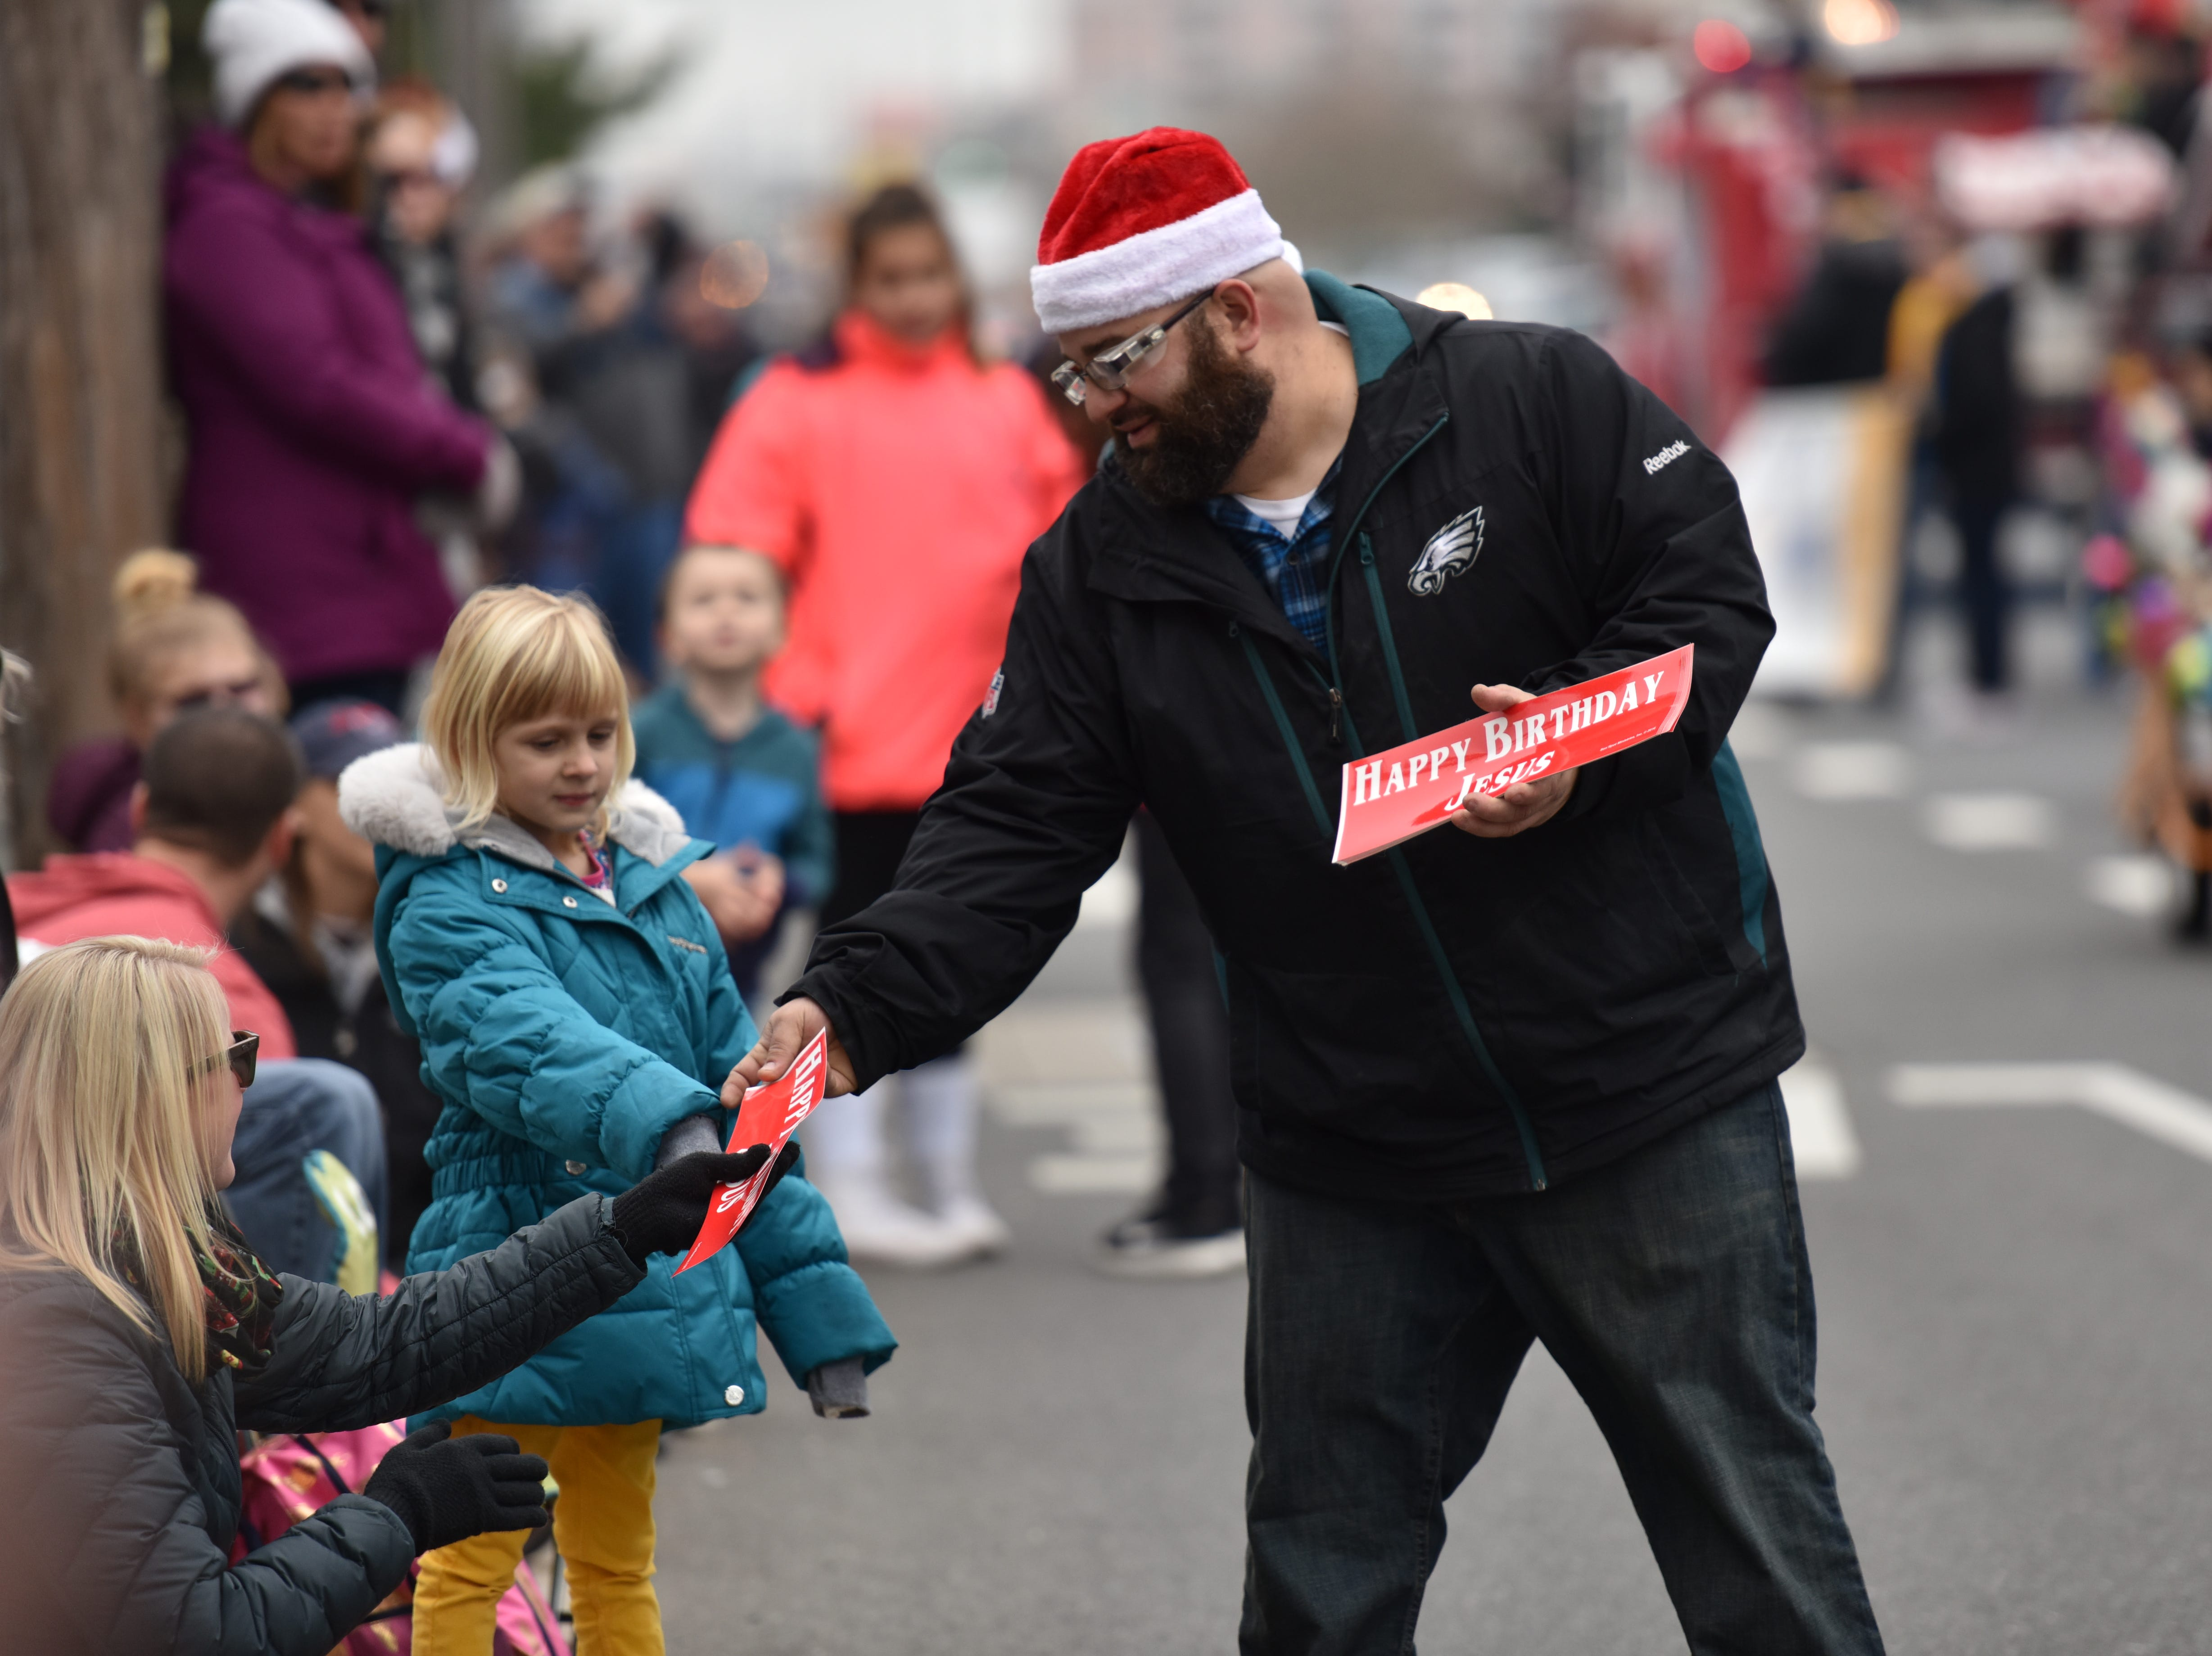 Performers, organizations and businesses walked in the Ocean City Christmas parade on Saturday, Dec. 1, 2018.